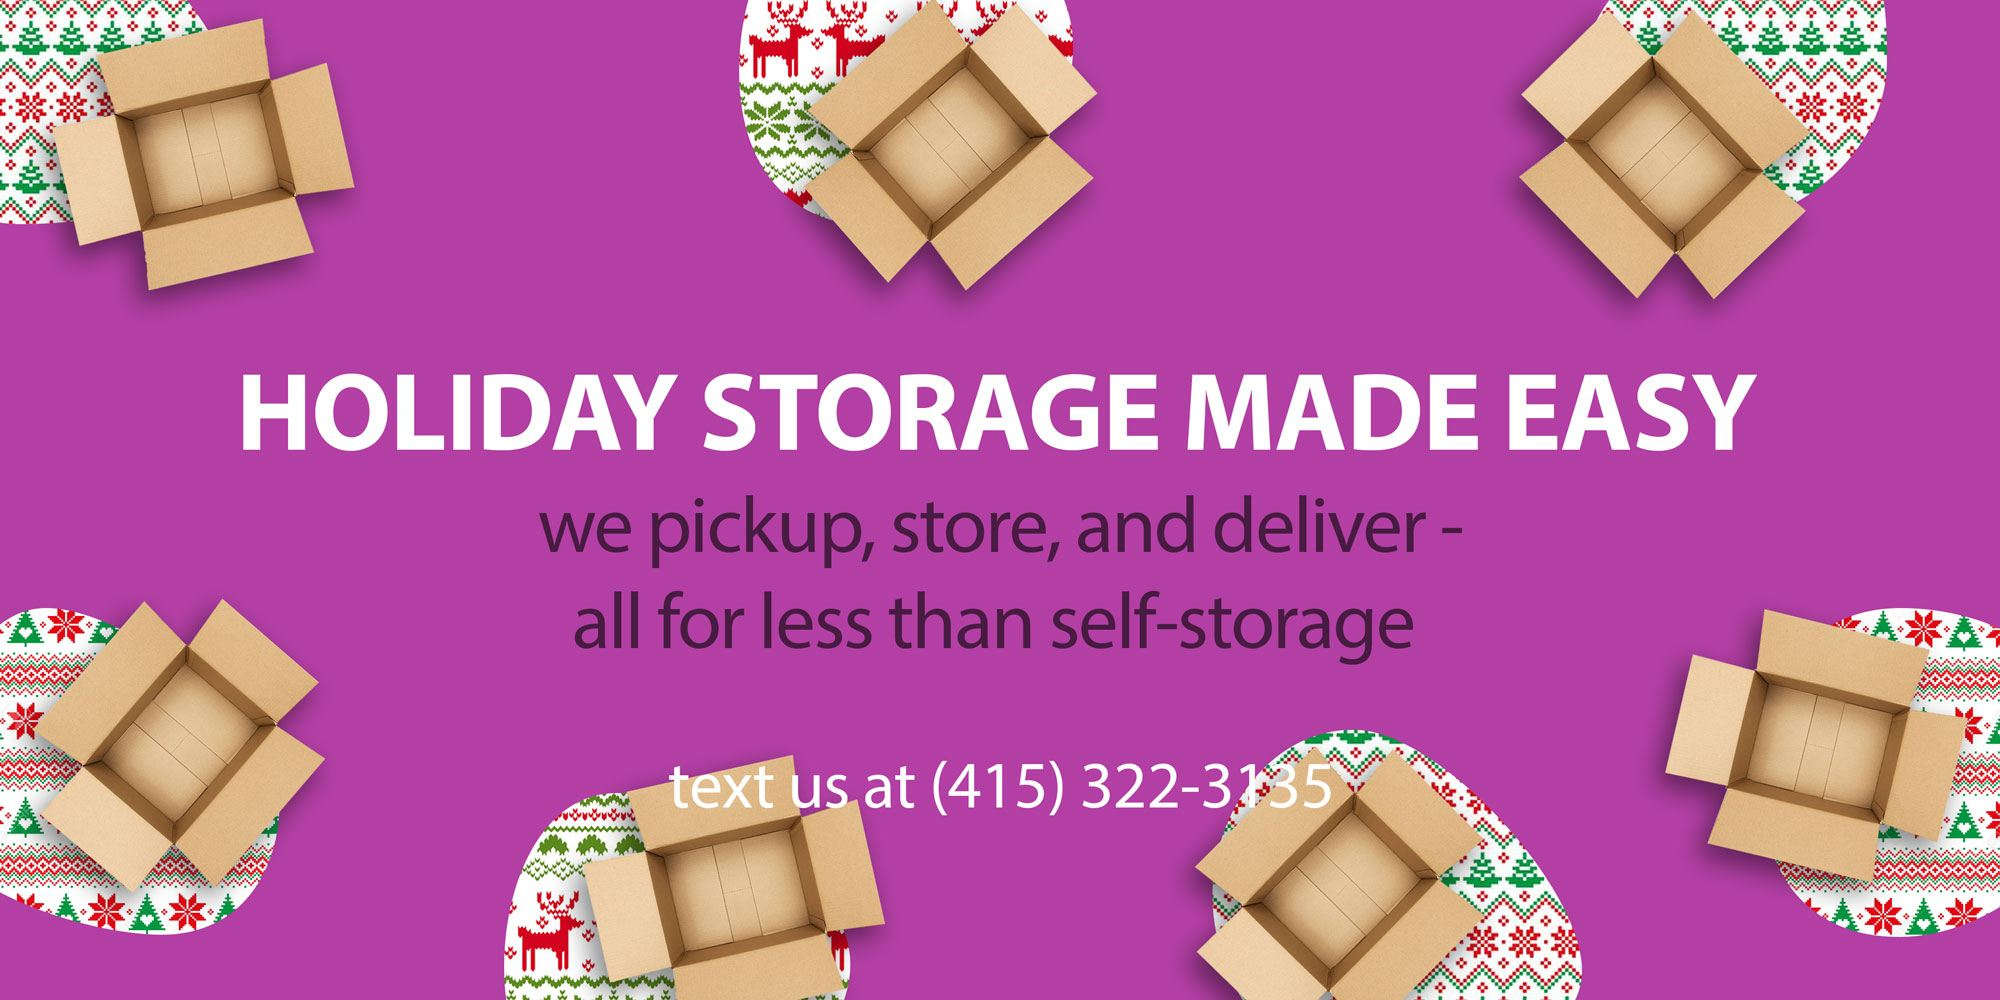 Holiday Storage san francisco self stoarge San Francisco Storage sf, Storage San Francisco. Boombox Storage banner-image. Get rid of clutter. Better rates than and Closetbox!